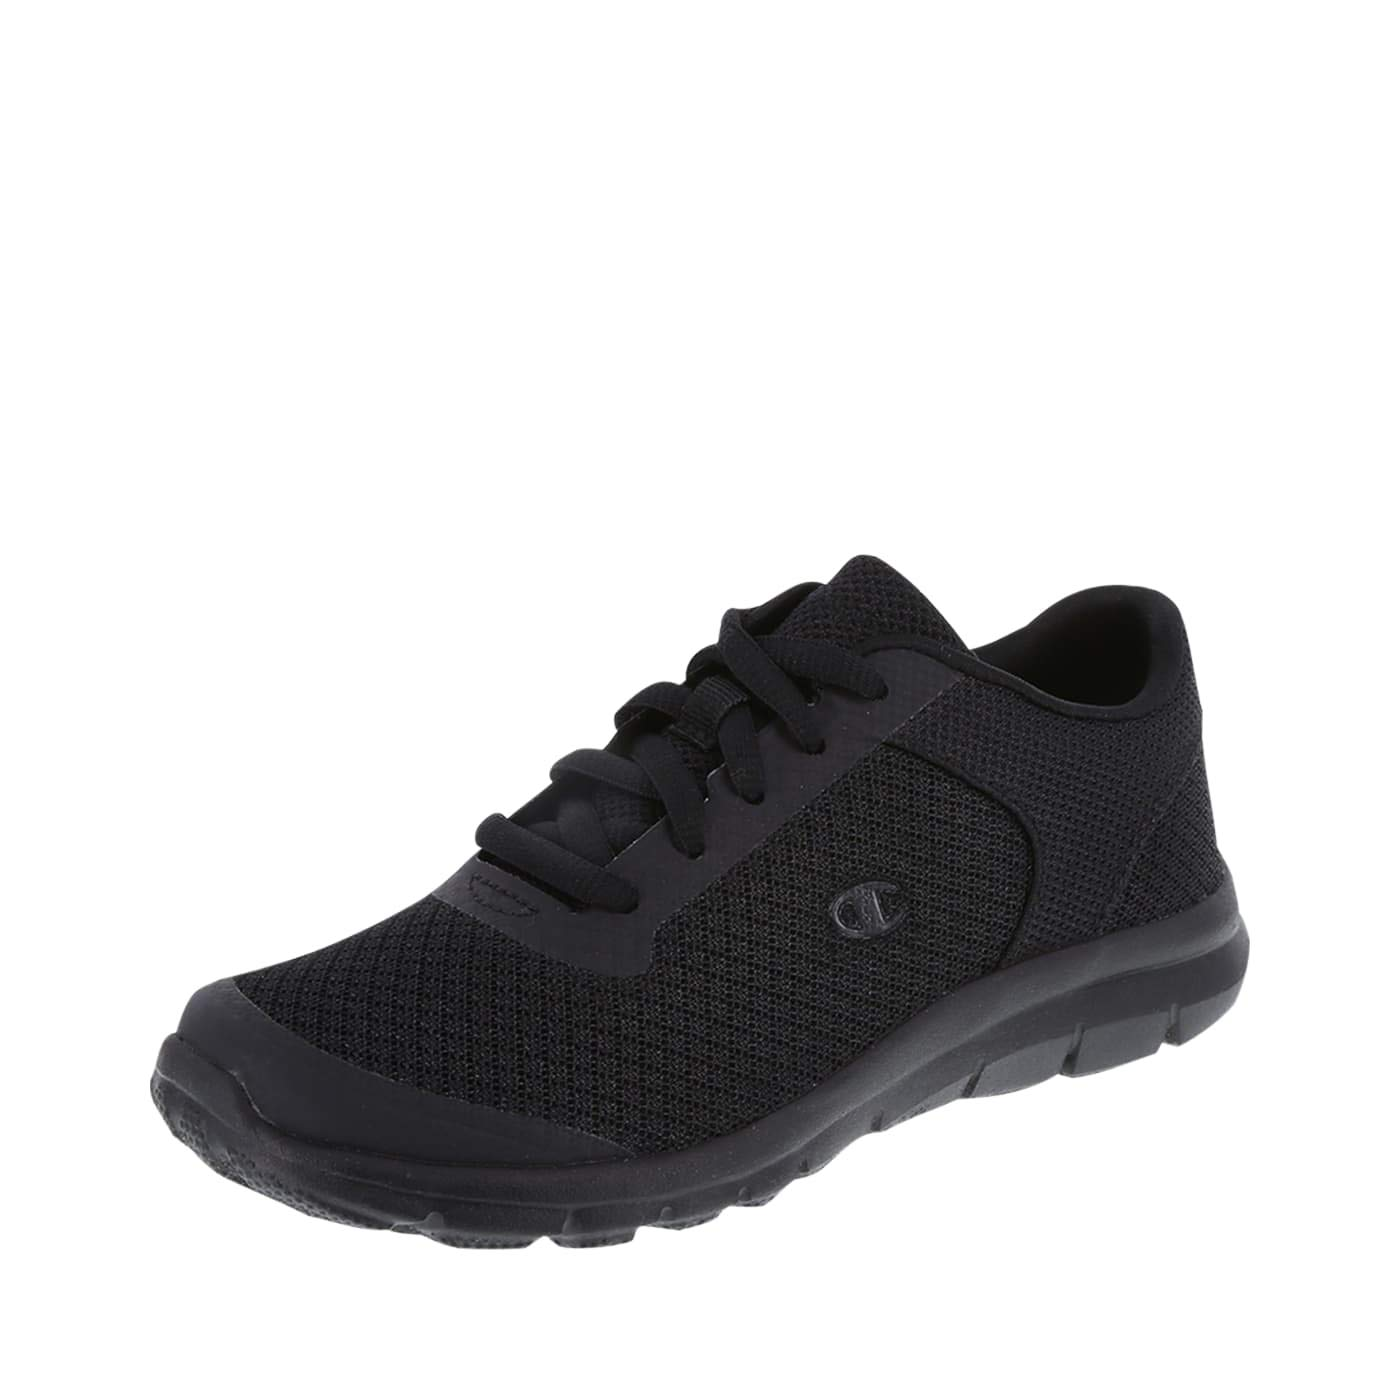 8301646aaf0 Champion Gusto Boys Running Shoes - Trendy